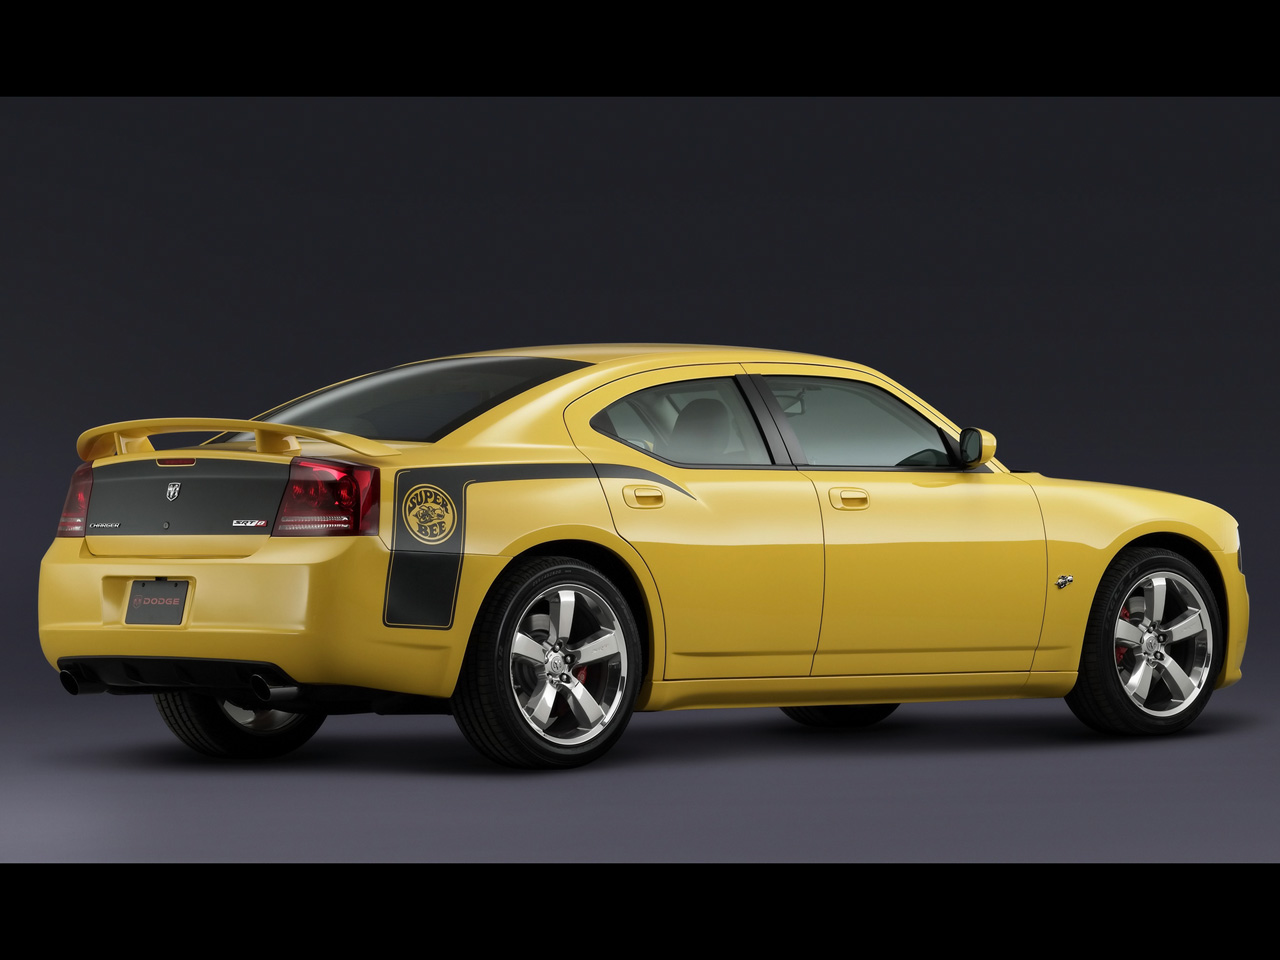 2011 Dodge Charger Super Bee Amcarguide Com American